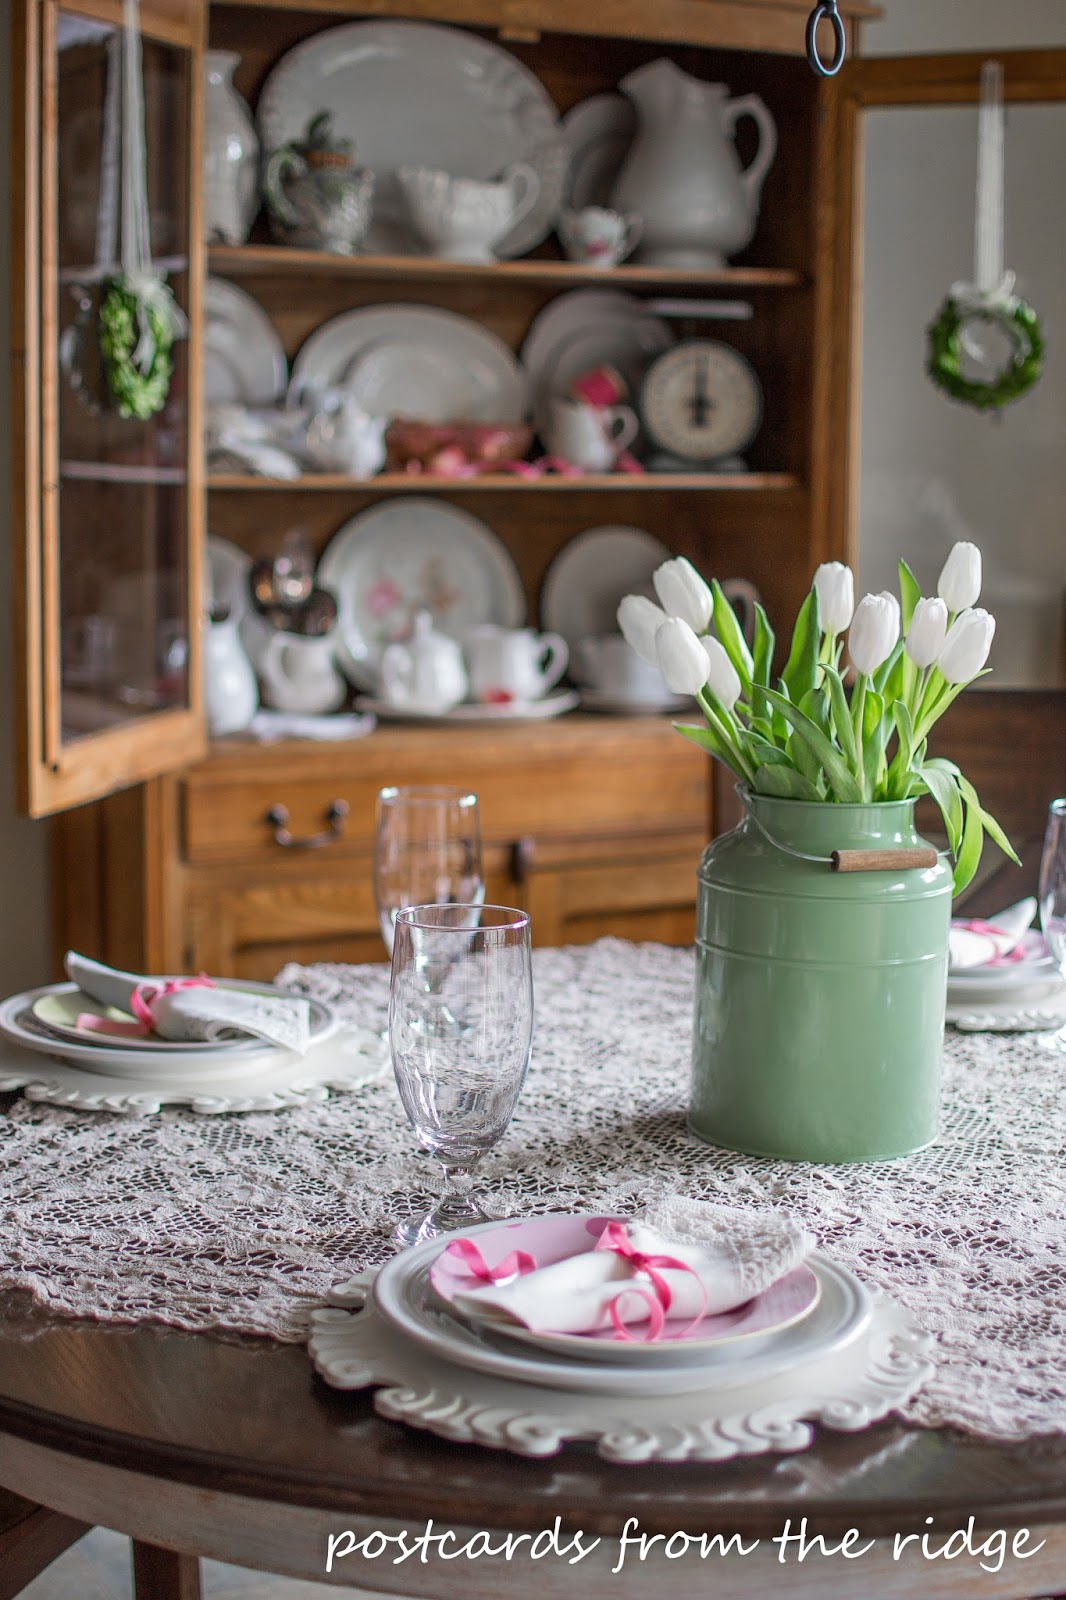 Spring table ideas using lace, flowers, pastels, and vintage finds. Postcards from the Ridge